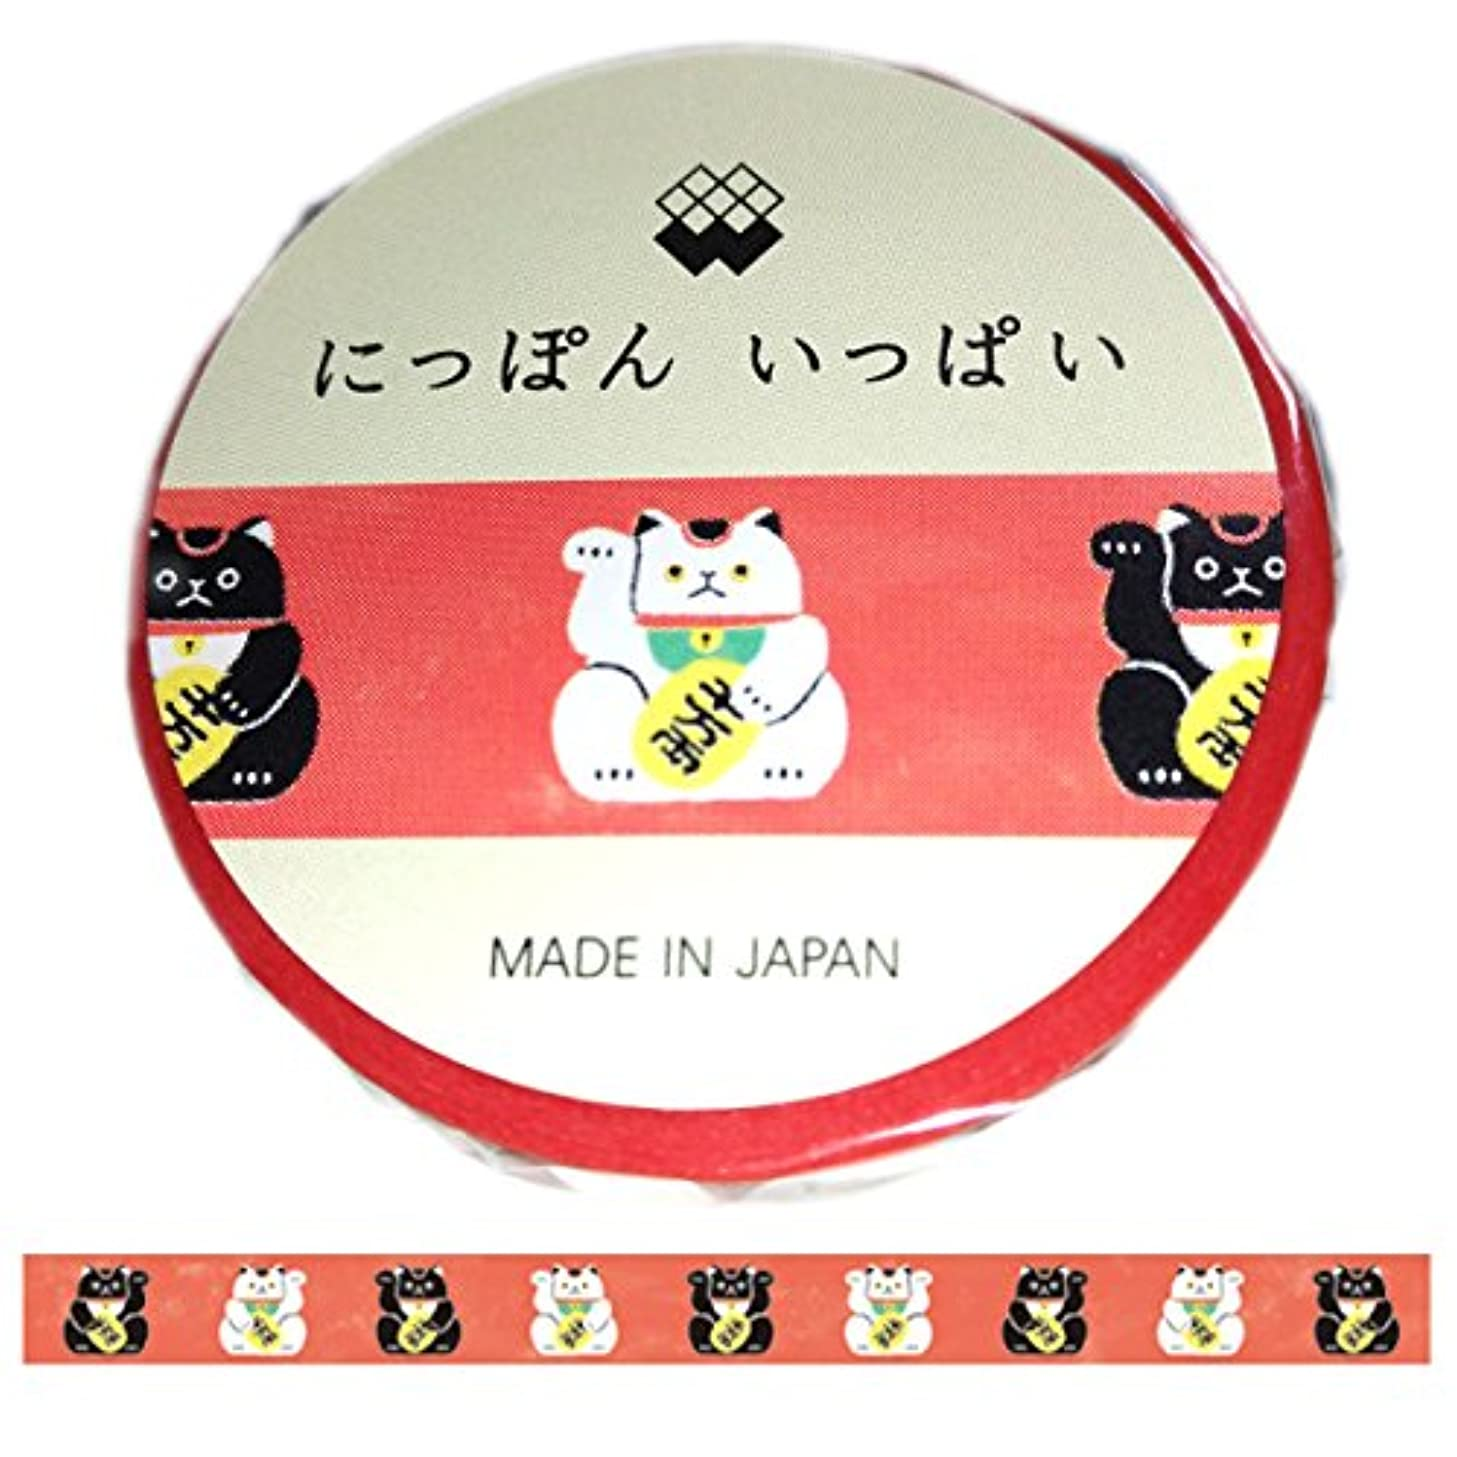 Kawaii Japanese Washi Tape. Popular for Japanese Girls That Produced by Famous Company in Japan.